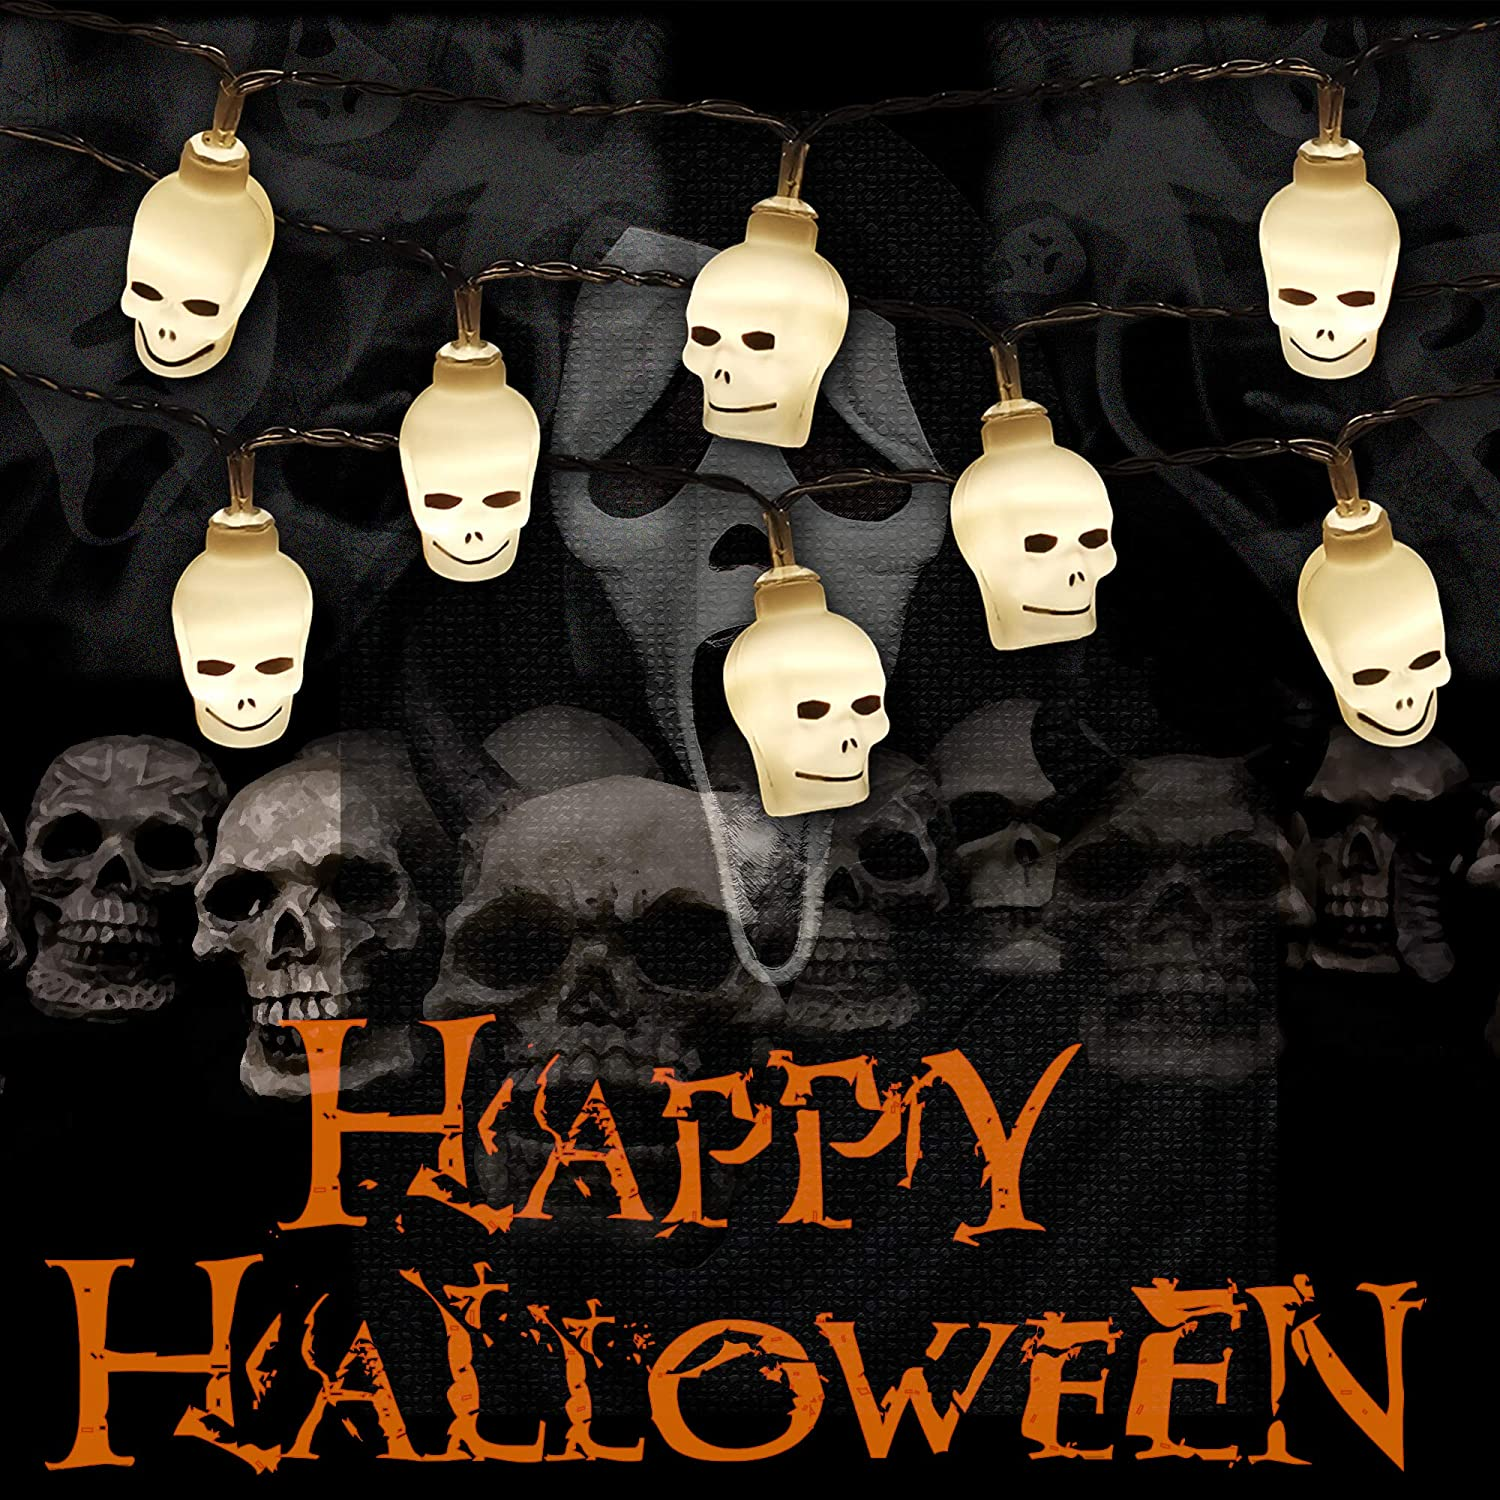 Halloween Decorations Lights with Remote,8 Modes IP65 Waterproof Battery Operated Fairy String Lights for Christmas Bar Outdoor Indoor Halloween Decor (Skull-Warm White)